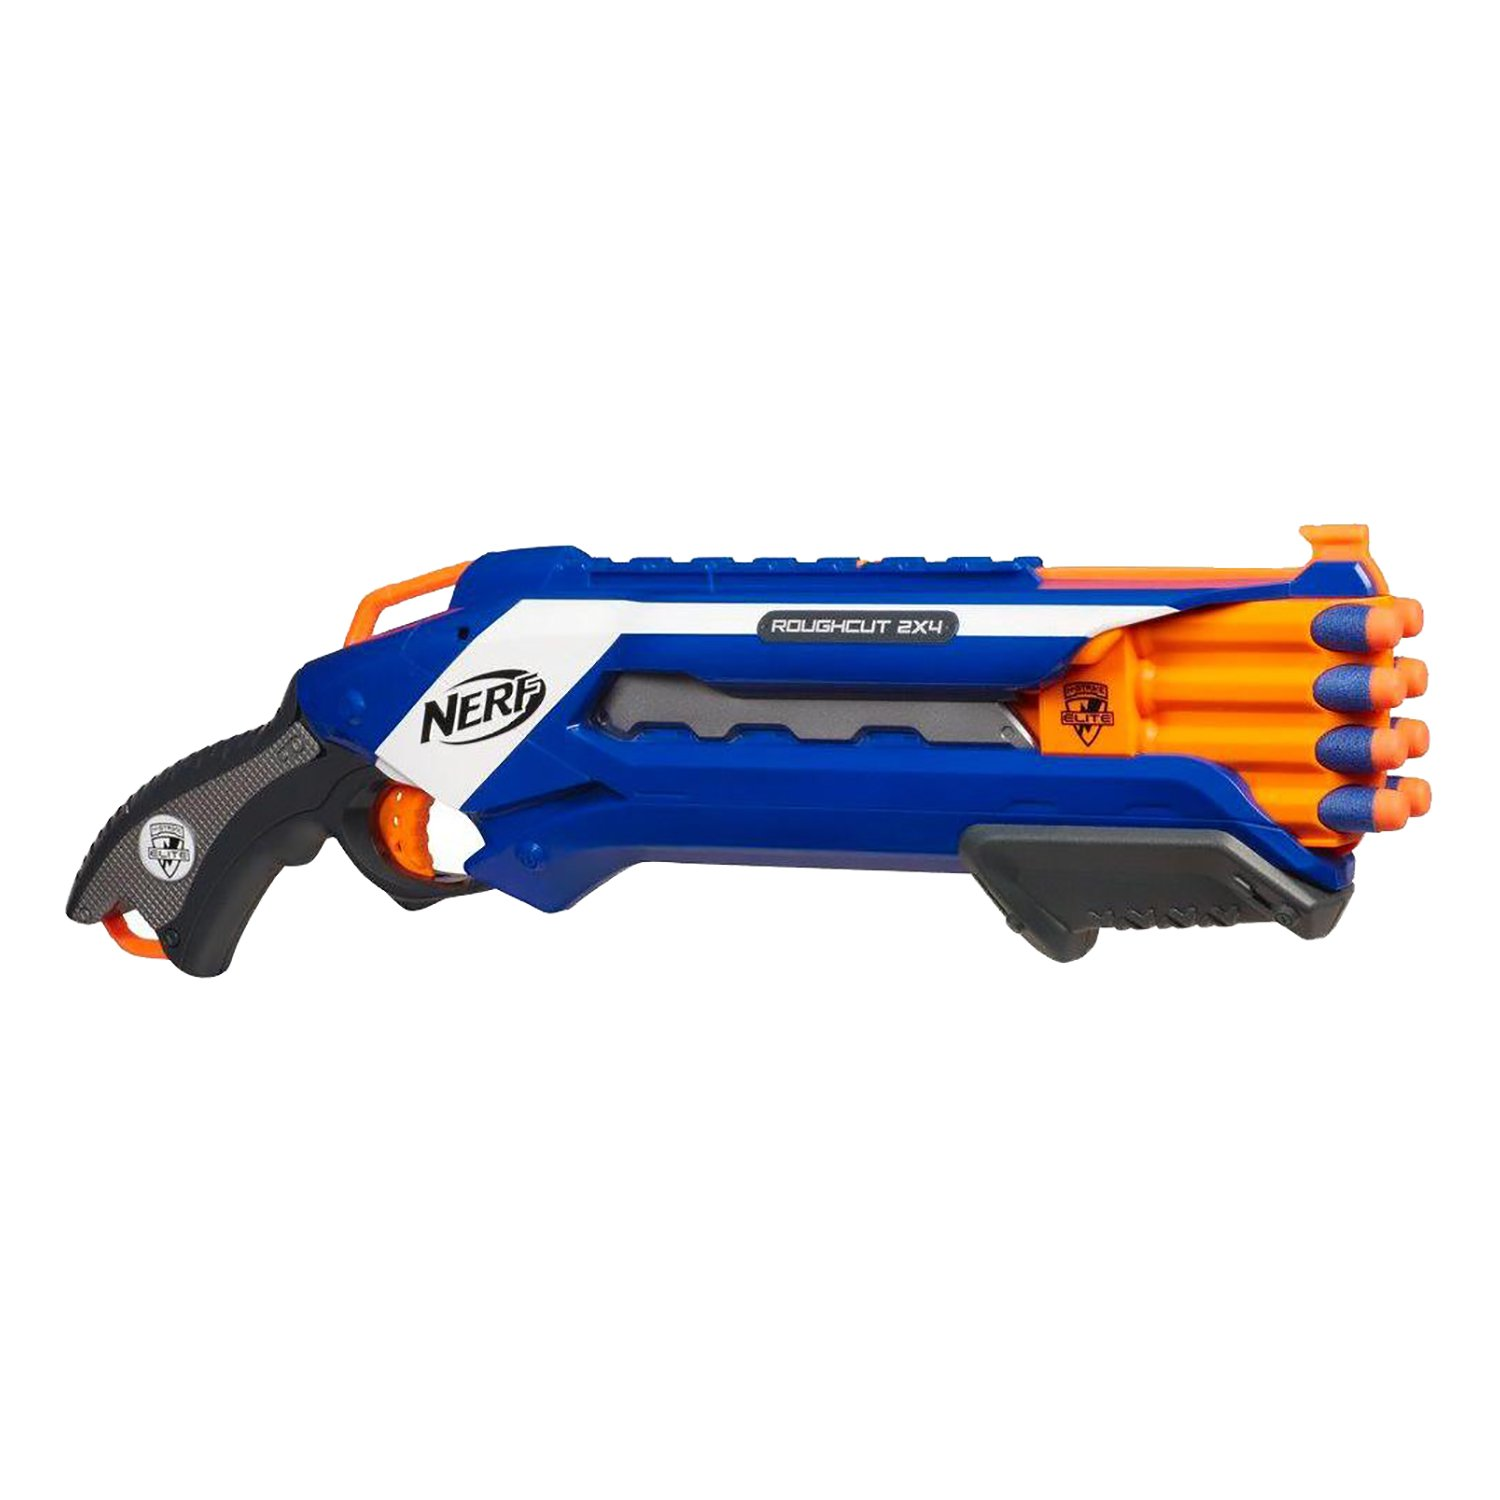 Blaster Nerf N-Strike Elite Rough Cut 2X4 imagine